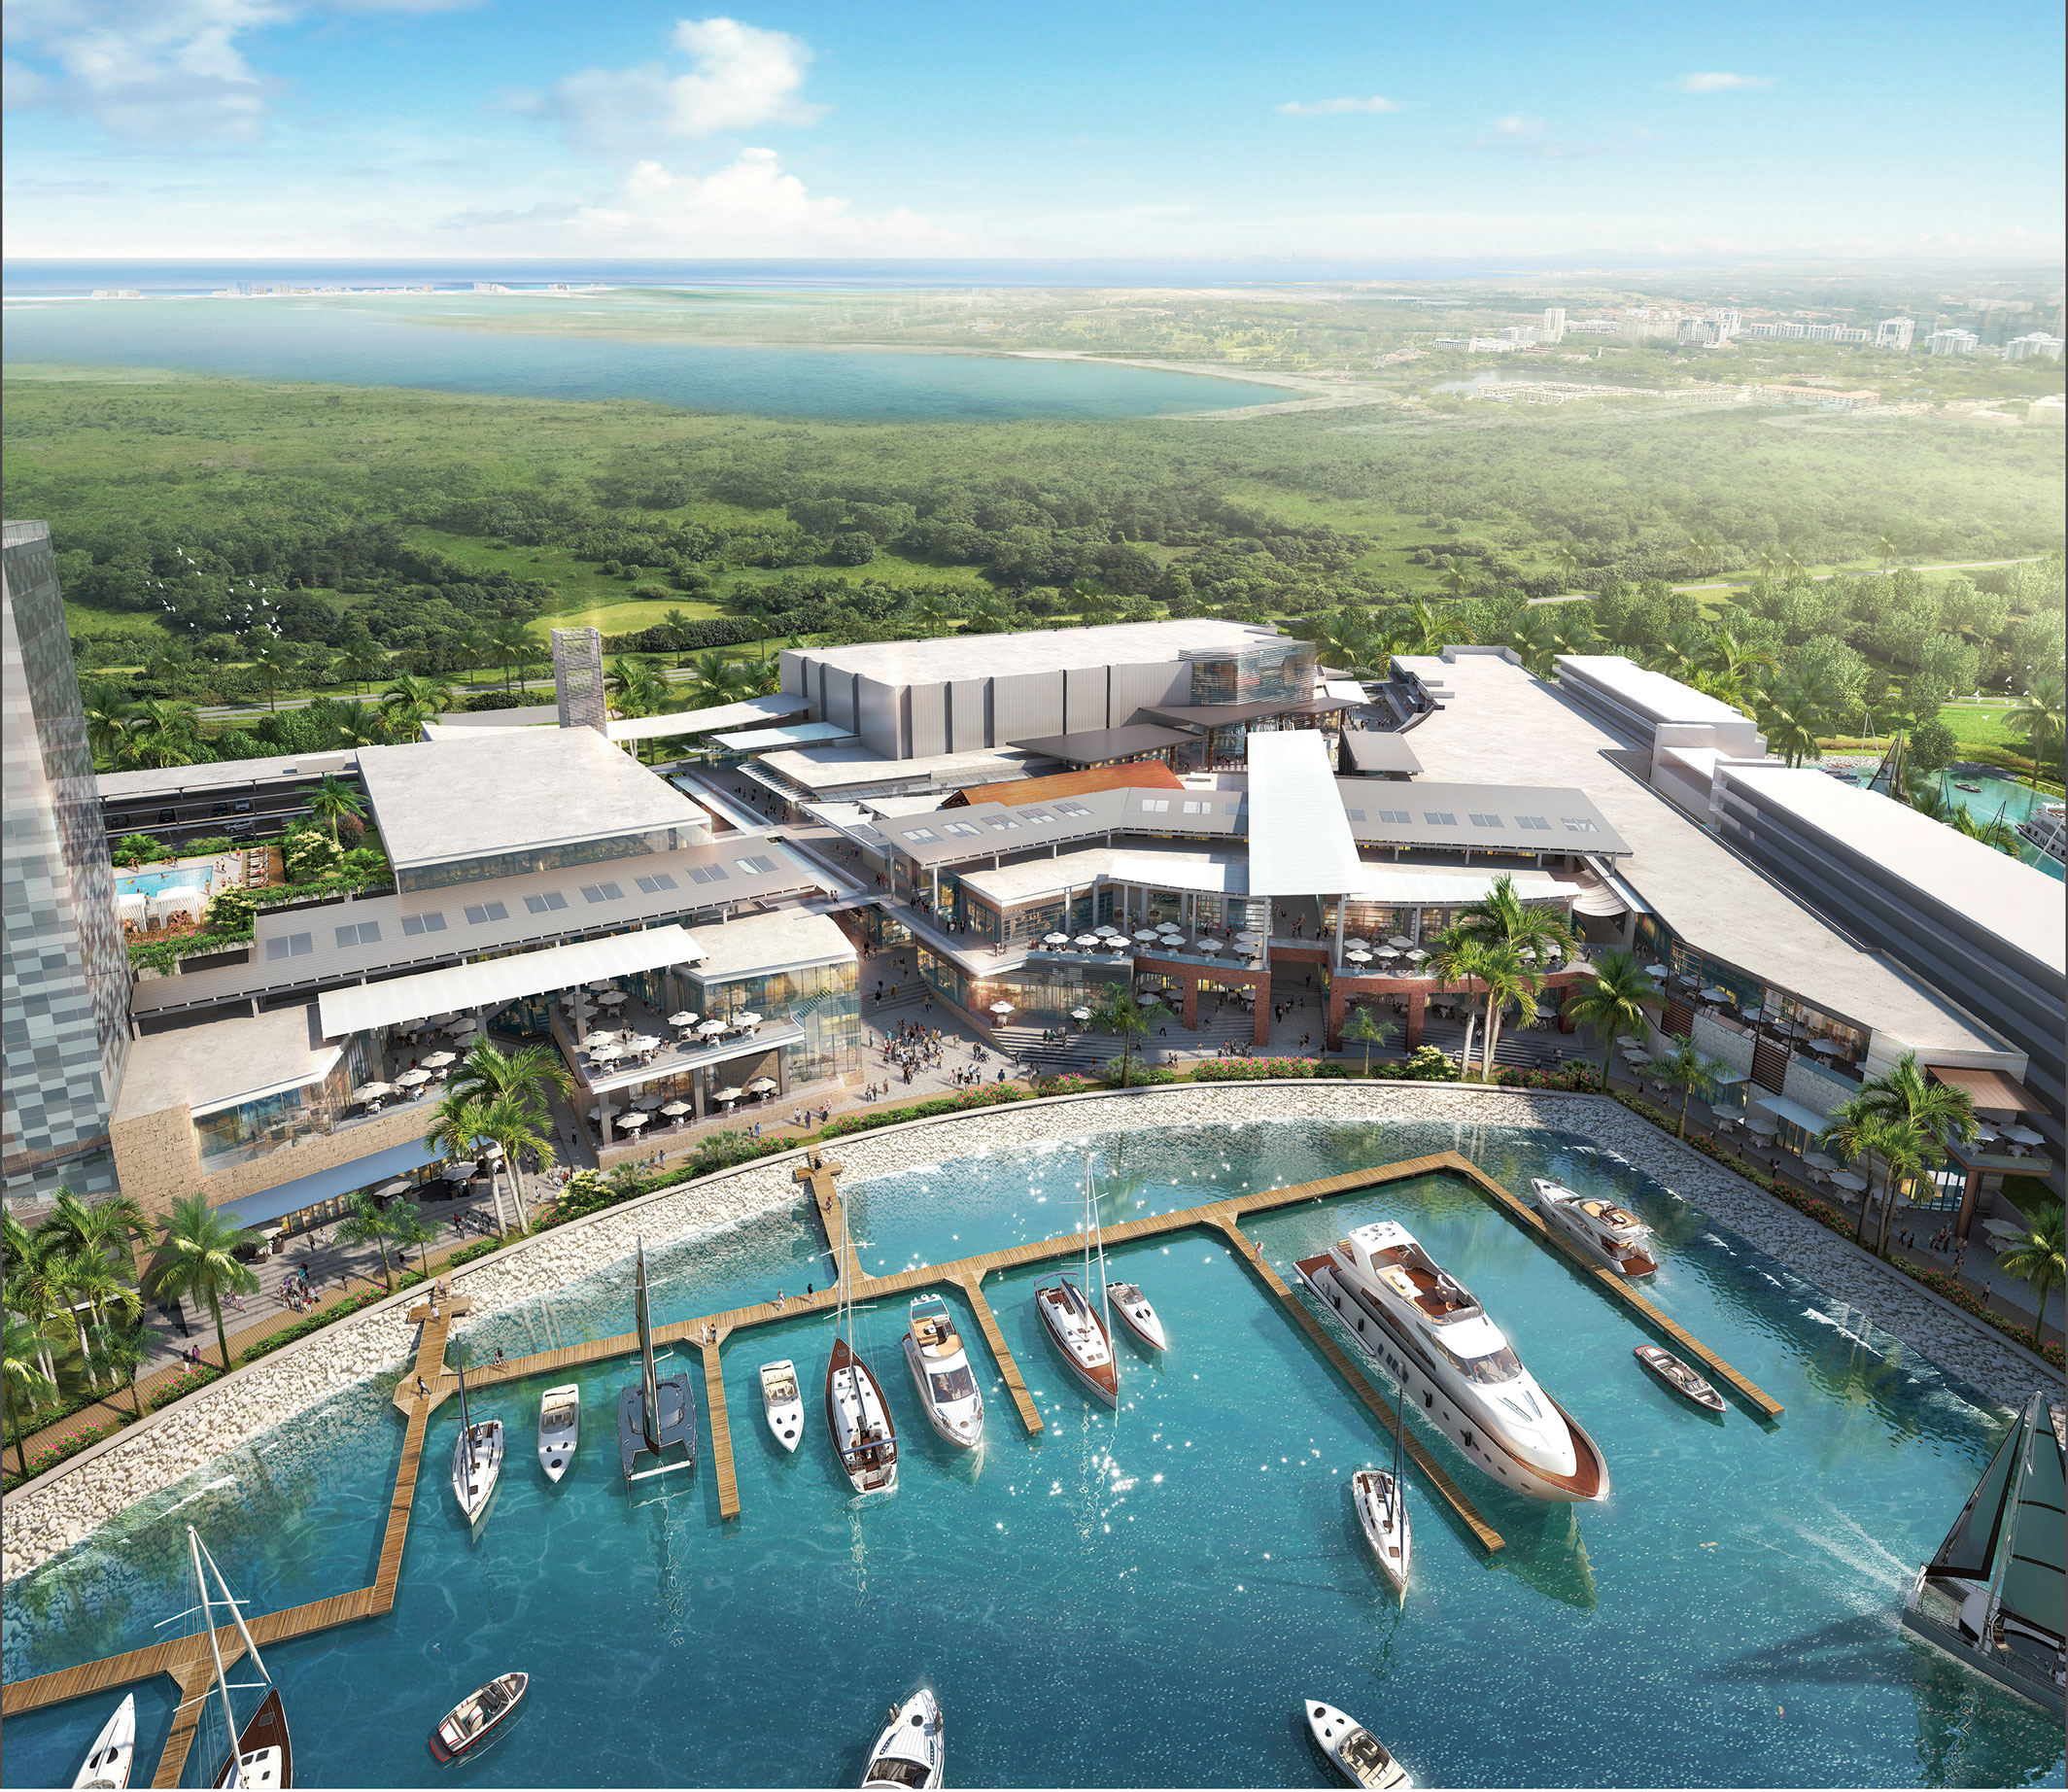 New Marina Town Center To Open In Cancun May 11